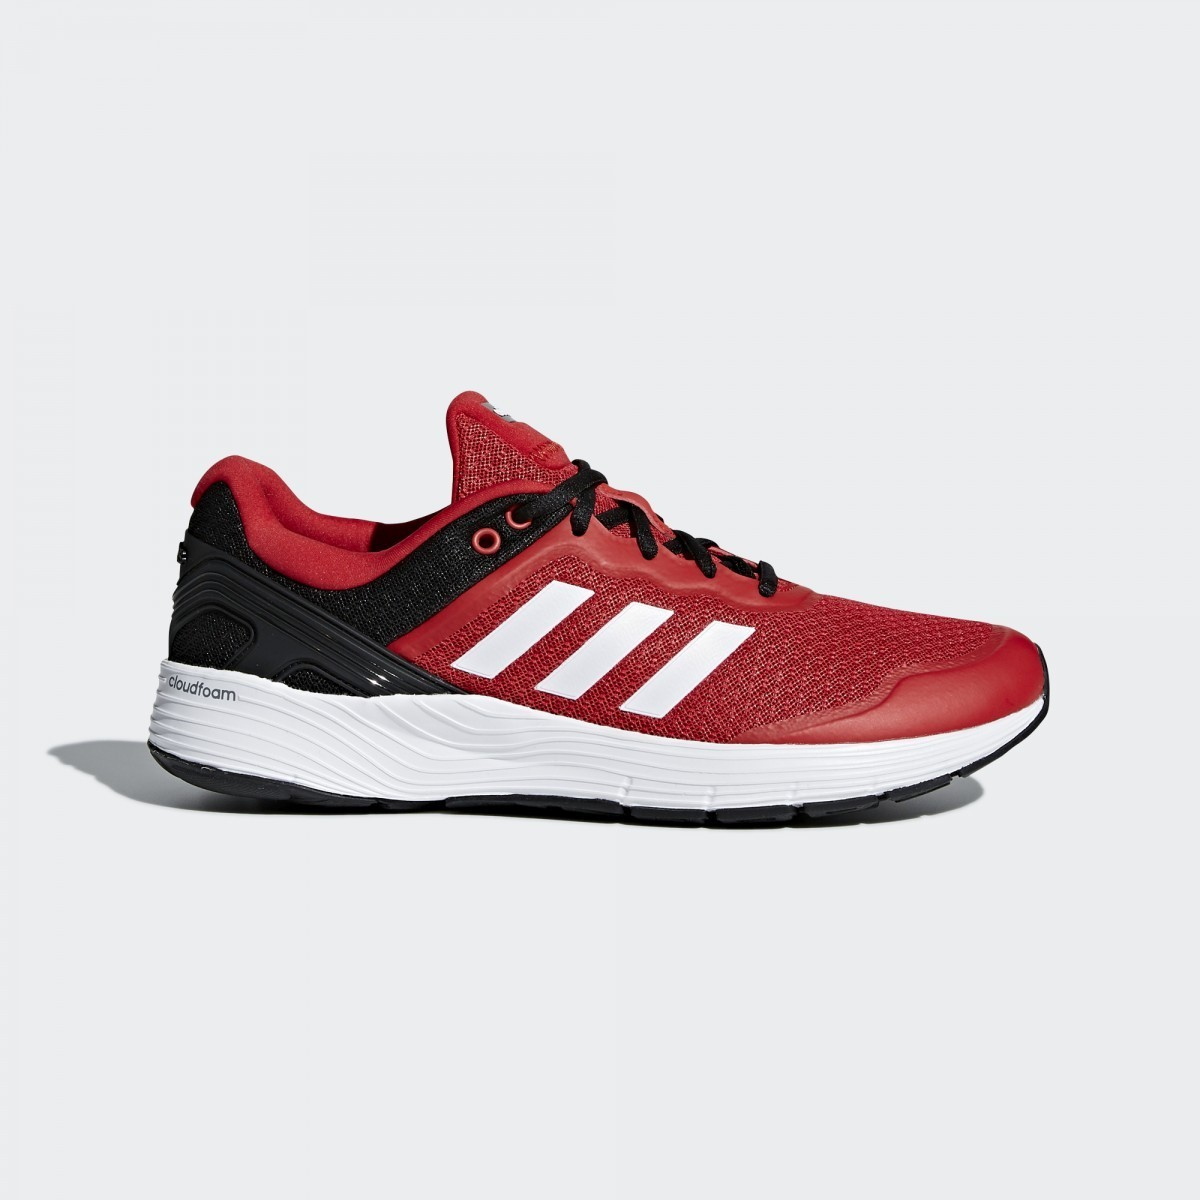 ADIDAS FLUIDCLOUD AMBITIOUS M (CG3895)